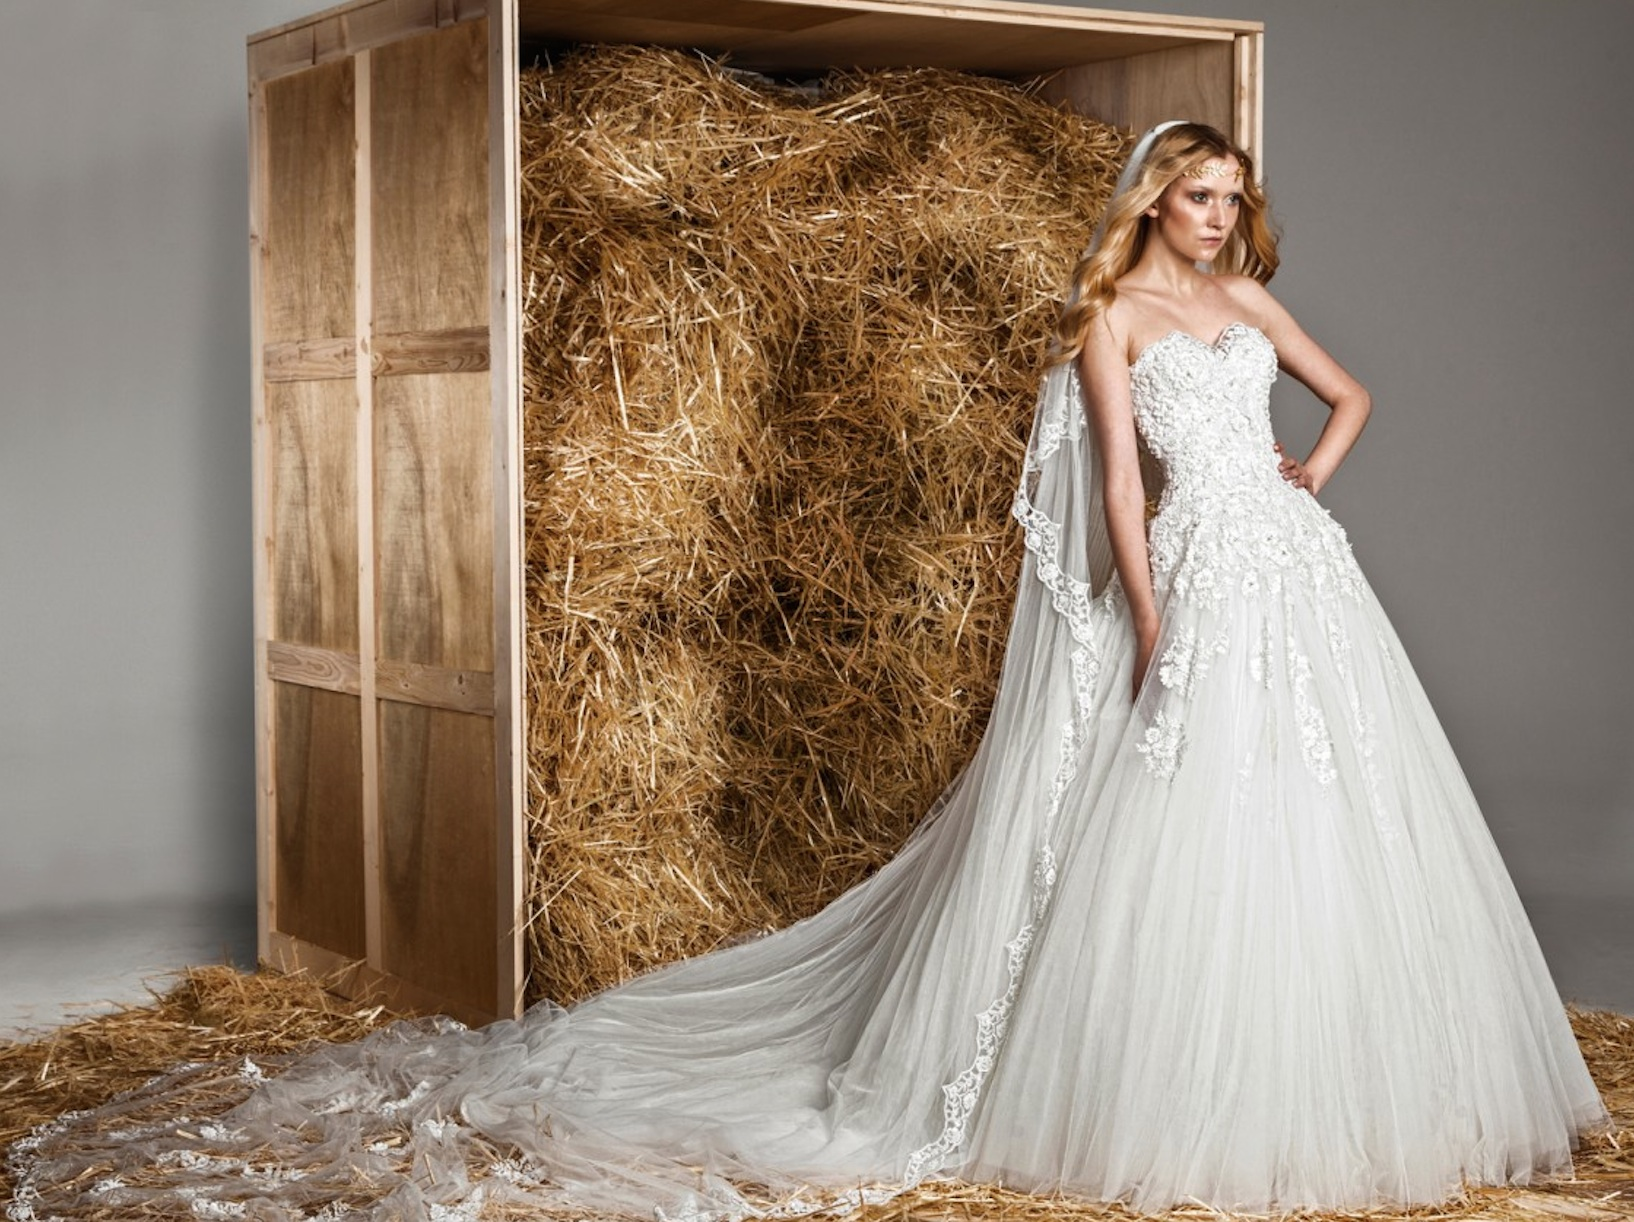 Bridal Dreams Zuhair Murad Now Available In Singapore